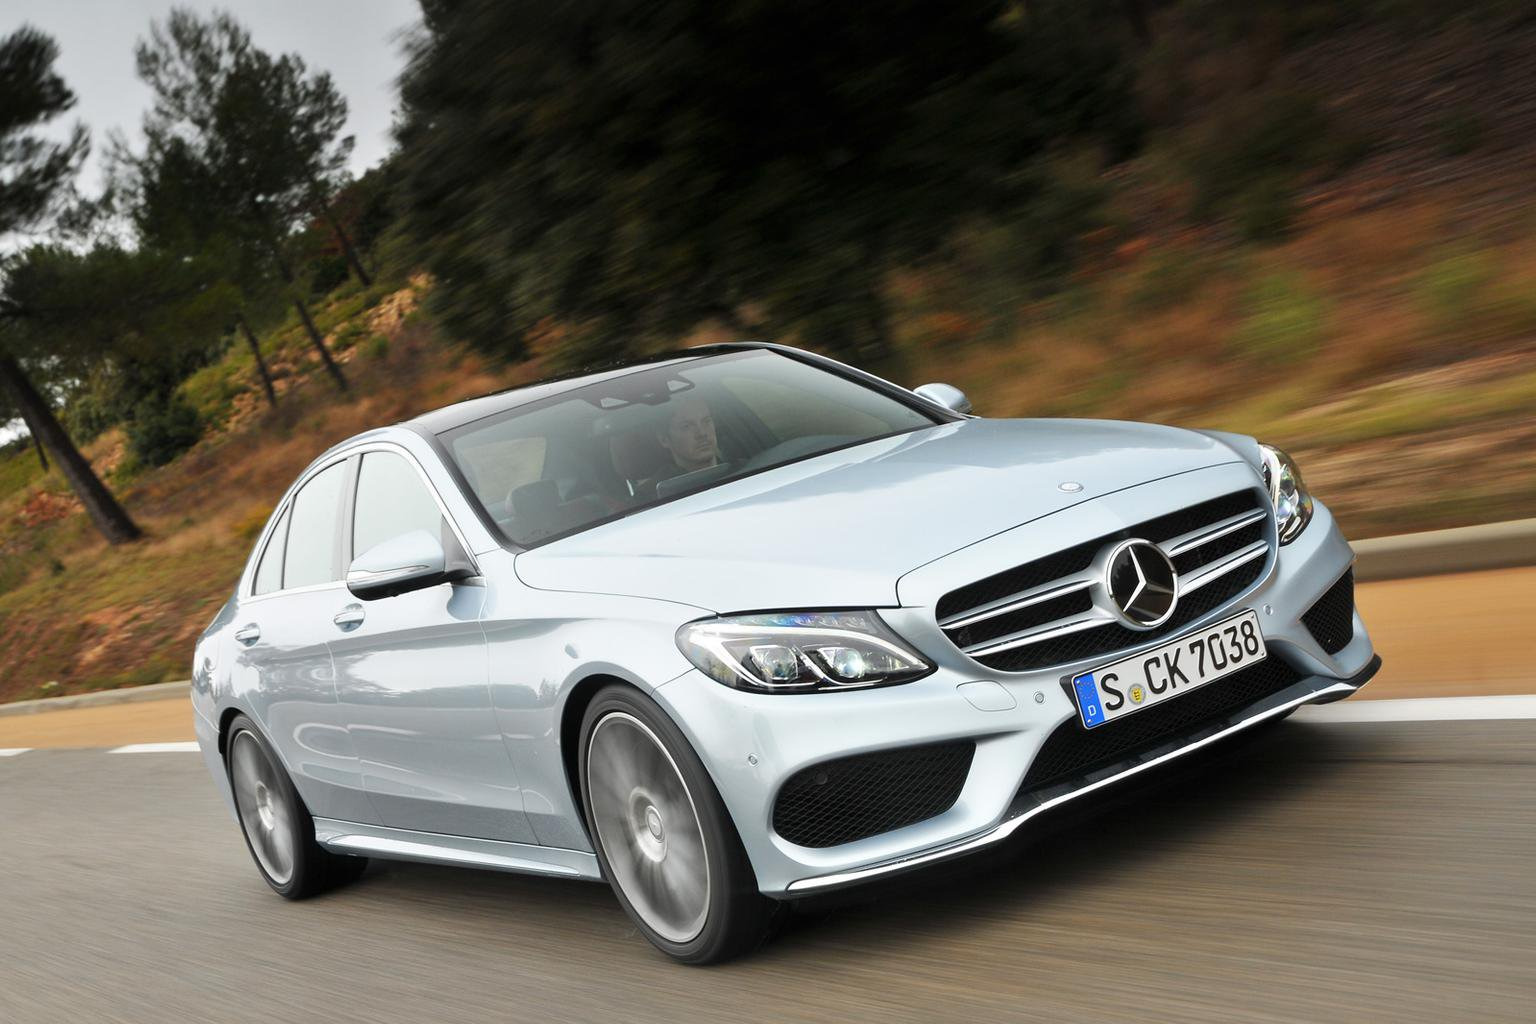 2014 Mercedes C-Class: all you need to know